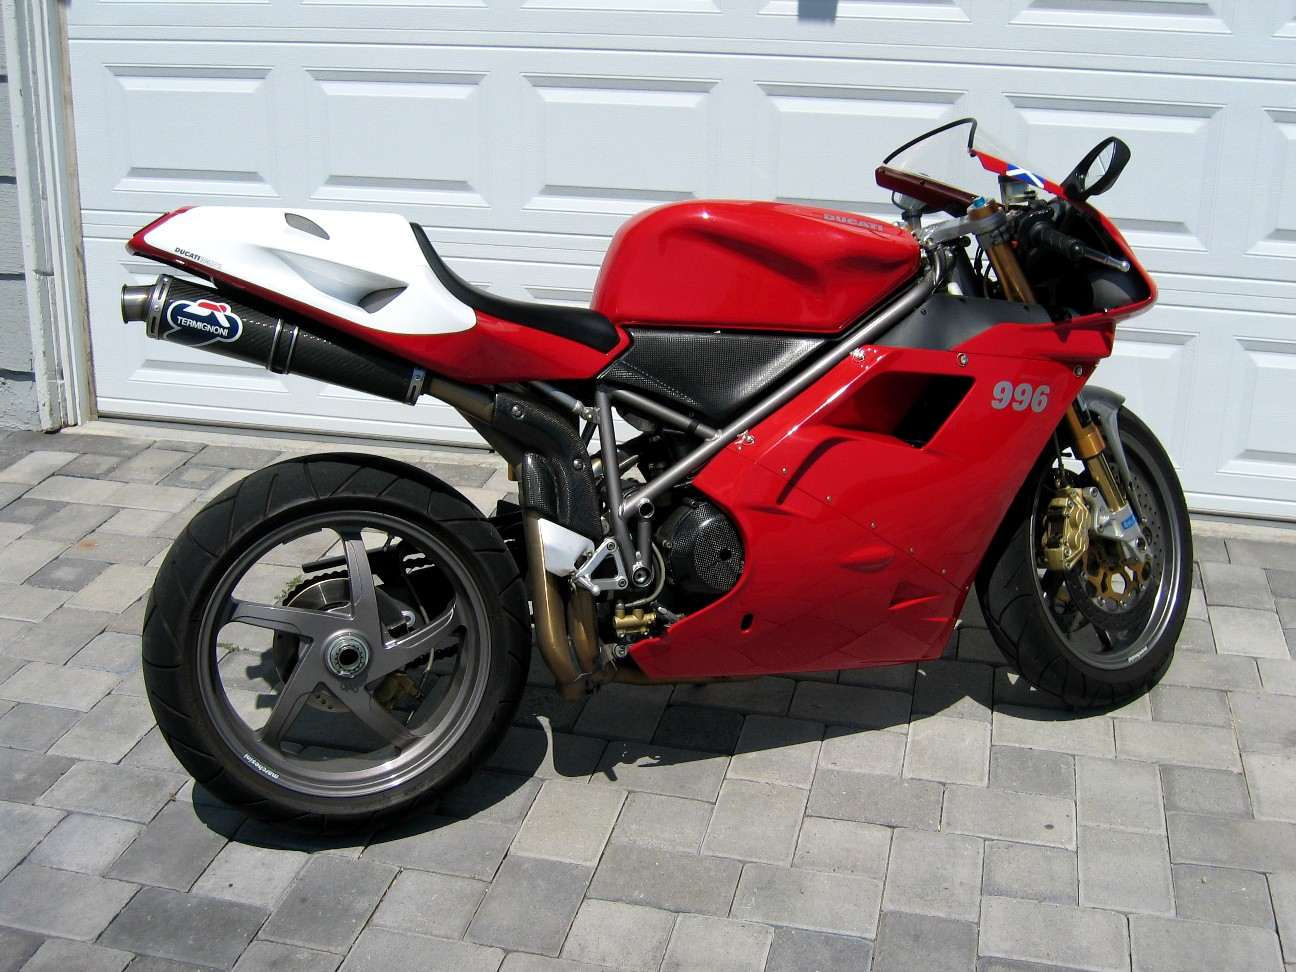 Ducati 996 2000 wallpapers #11242